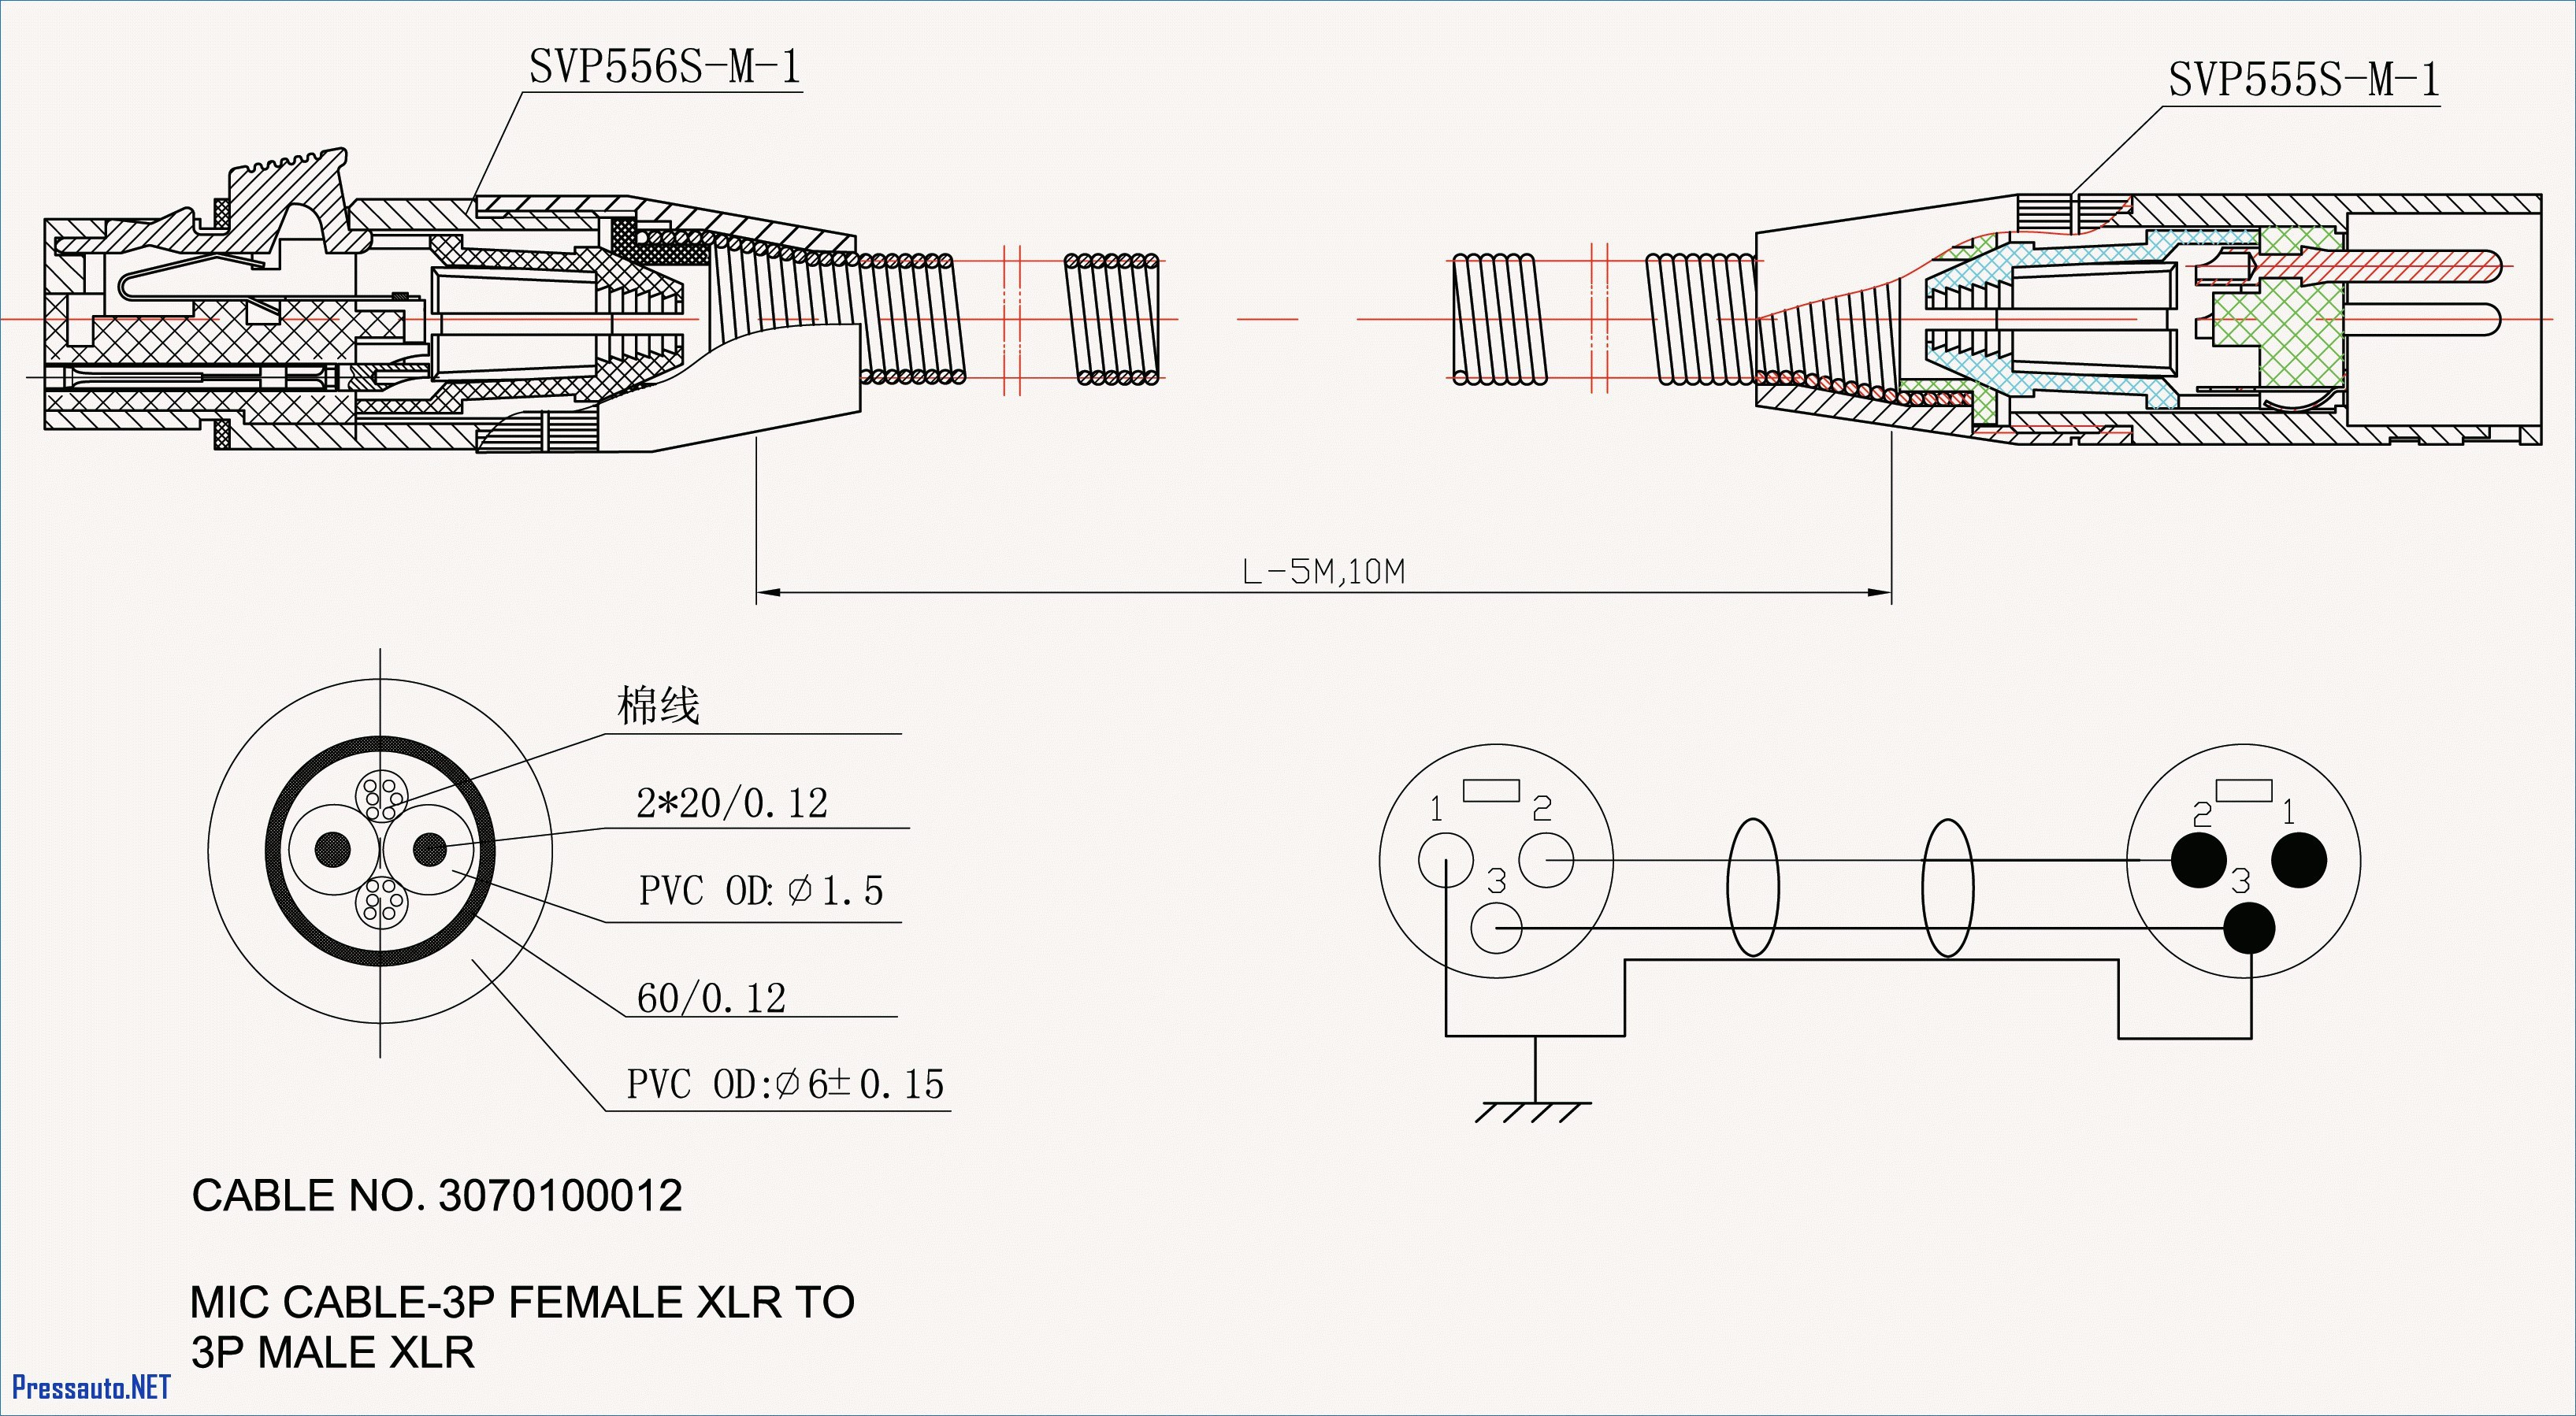 Carry On Trailers Wiring Diagram - Wiring Schematics Diagram - Carry On Trailer Wiring Diagram